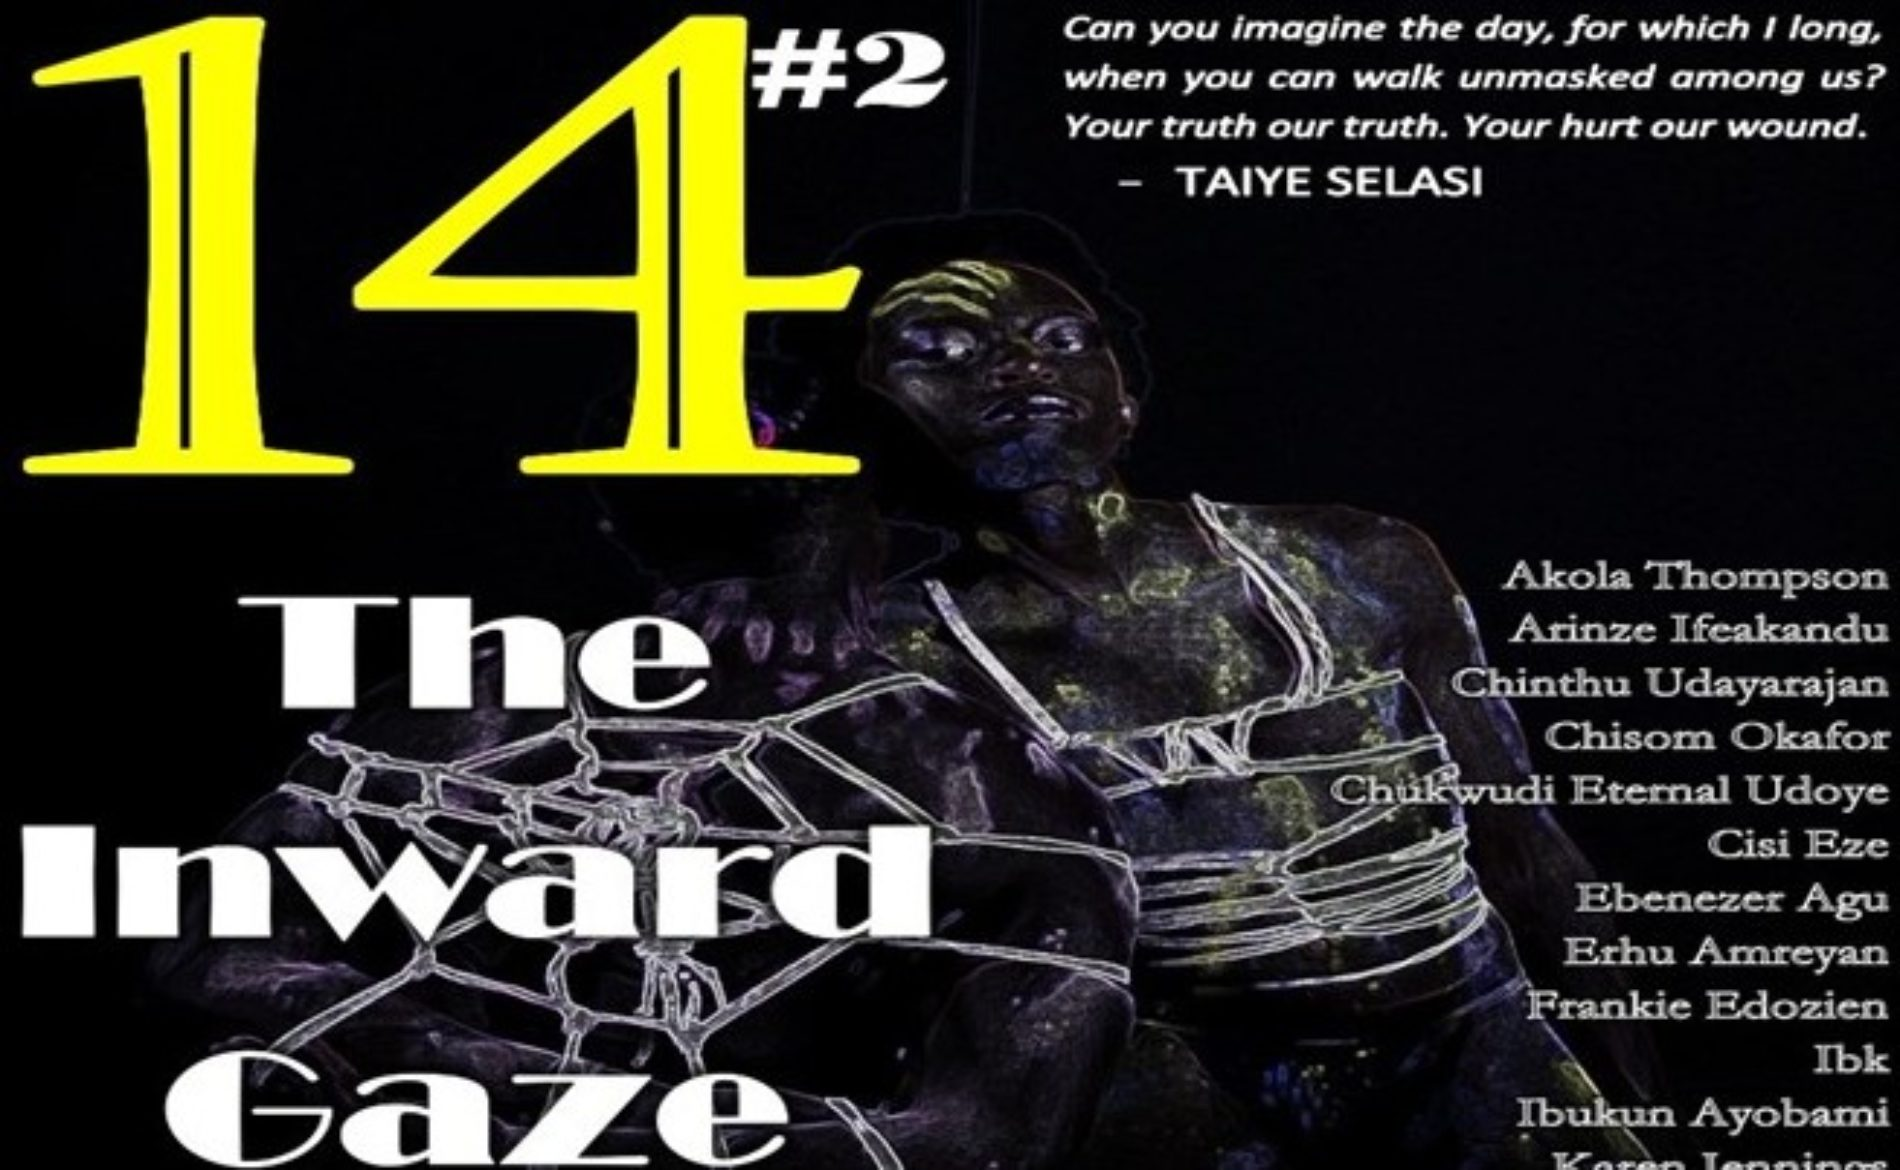 14: An Anthology of Queer Art | Vol. 2: The Inward Gaze